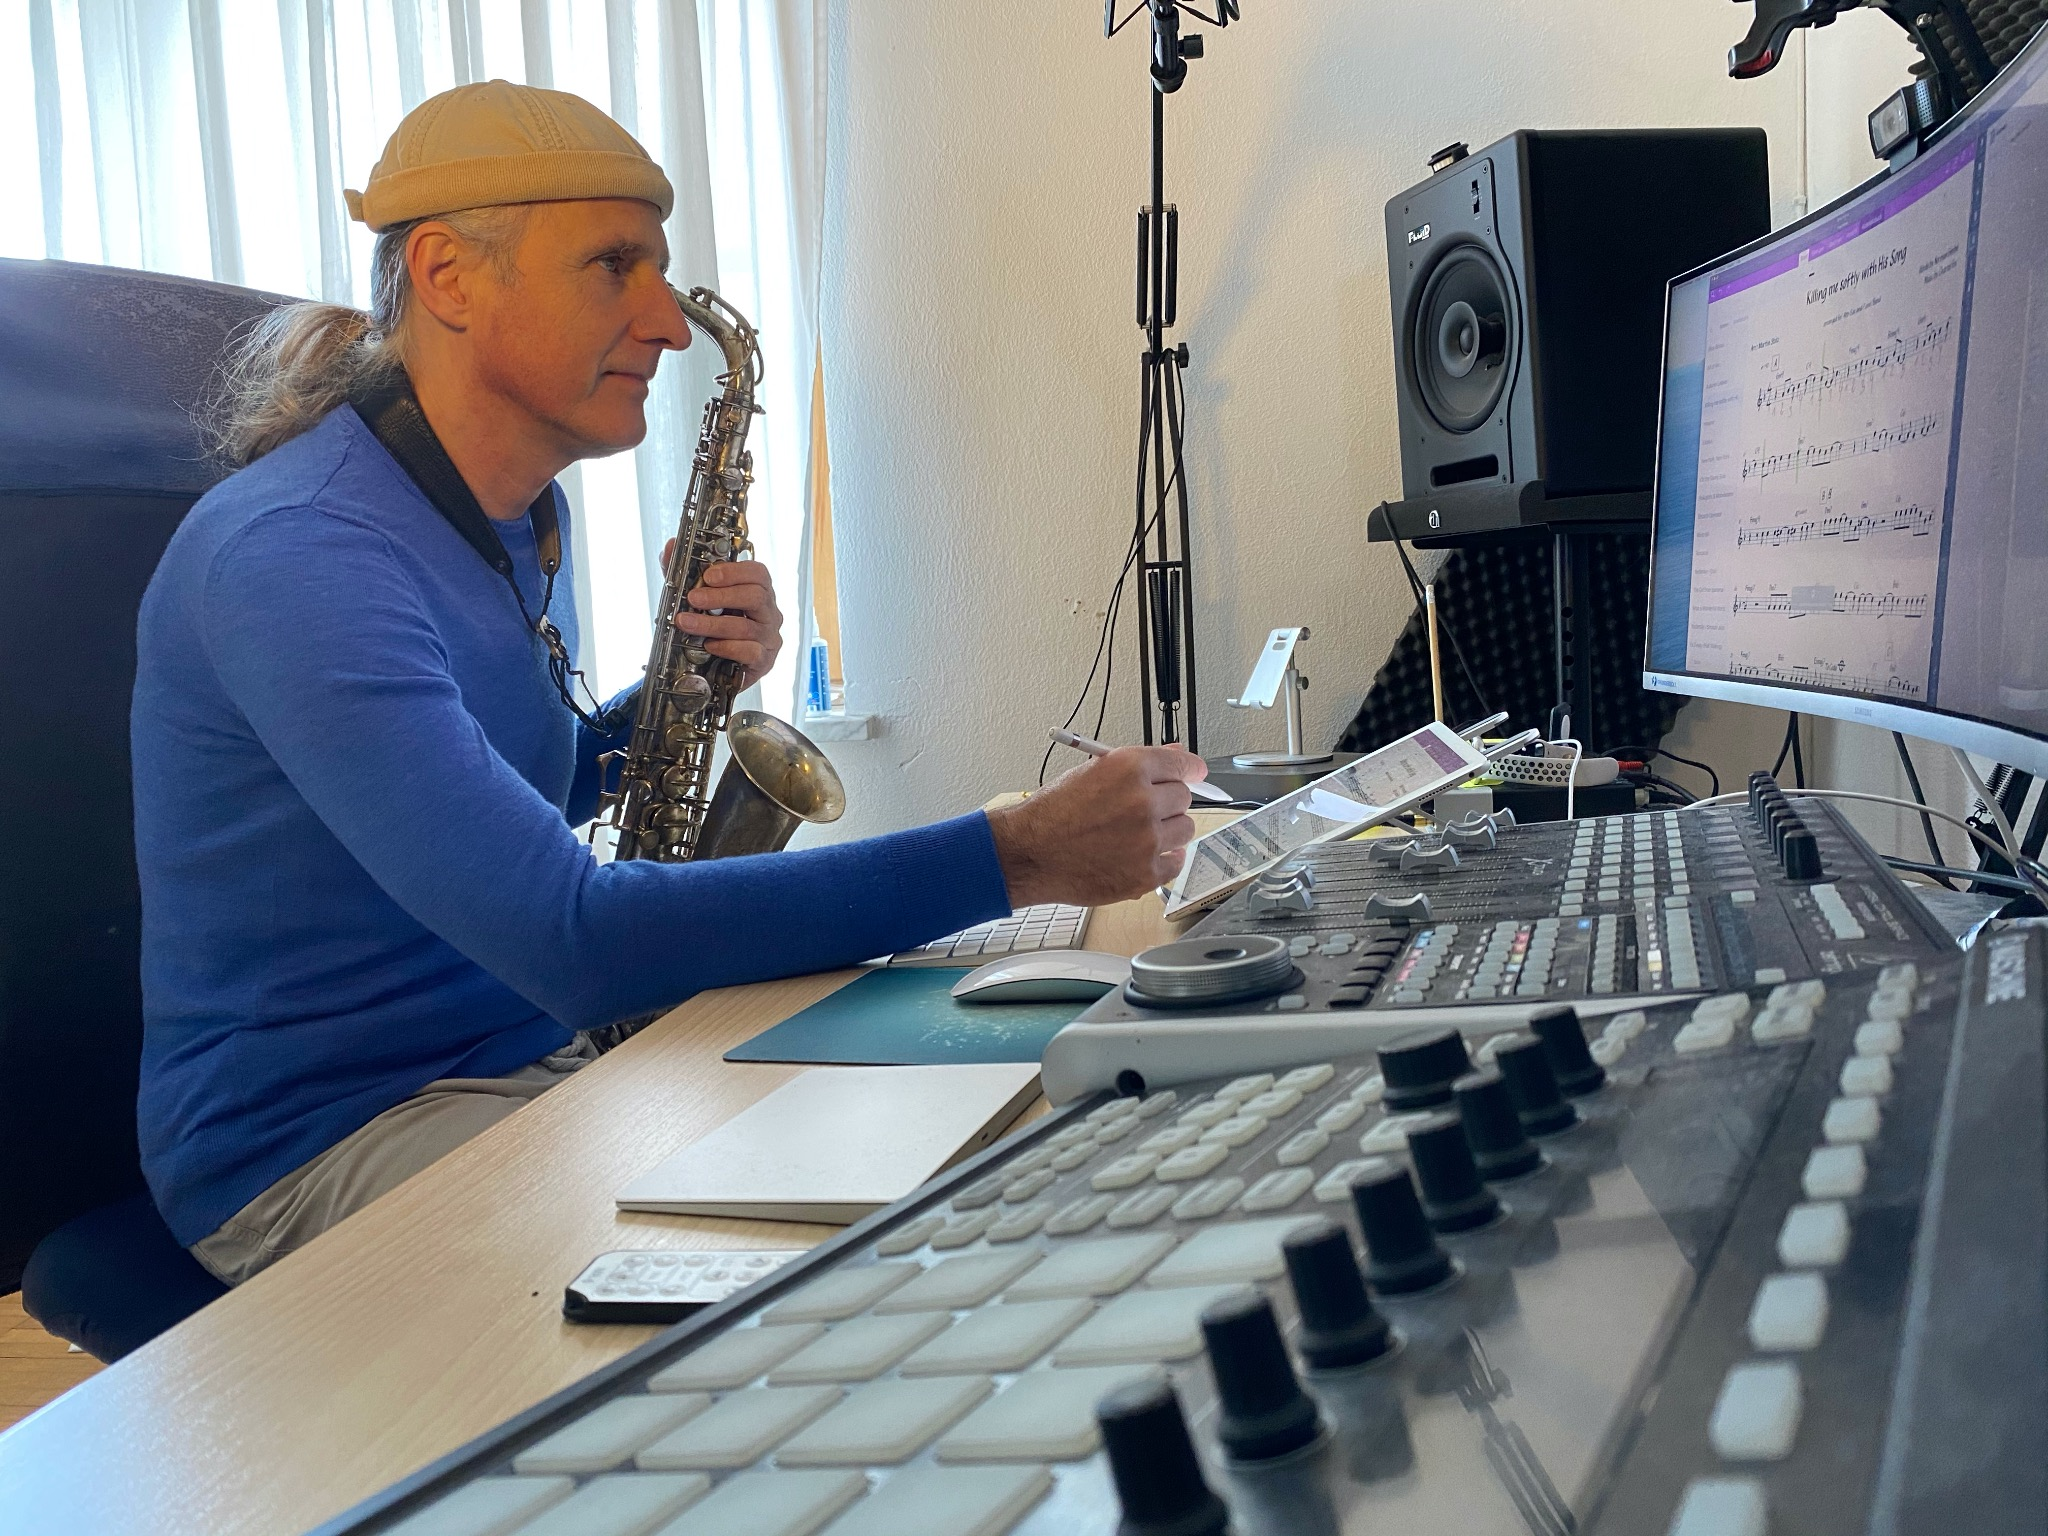 Online Lessons for Saxophone, Clarinet, Flute and Improvisation